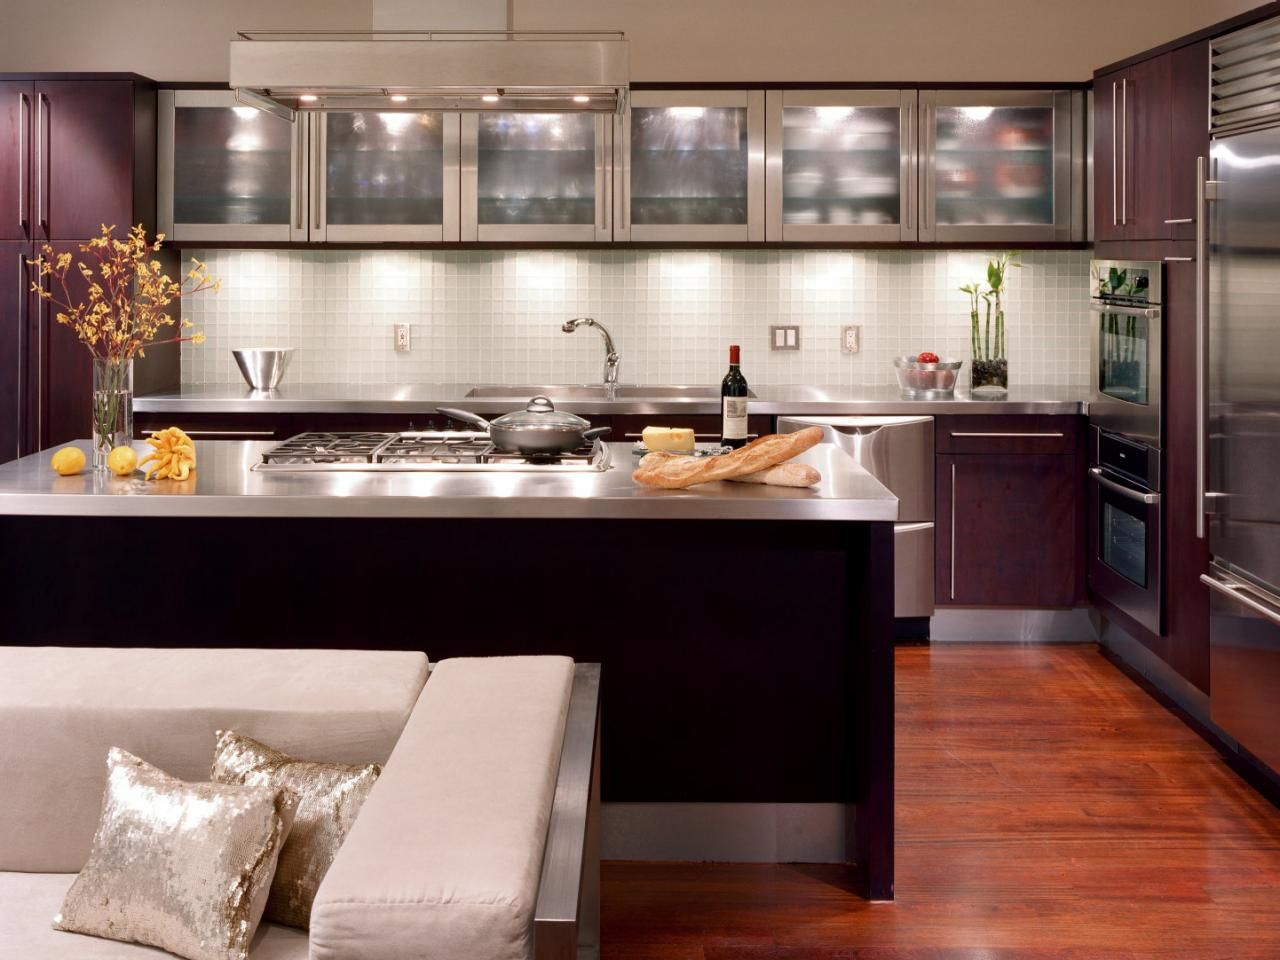 pictures of latest kitchen designs. Small Modern Kitchen Design Ideas  HGTV Pictures Tips Pendant